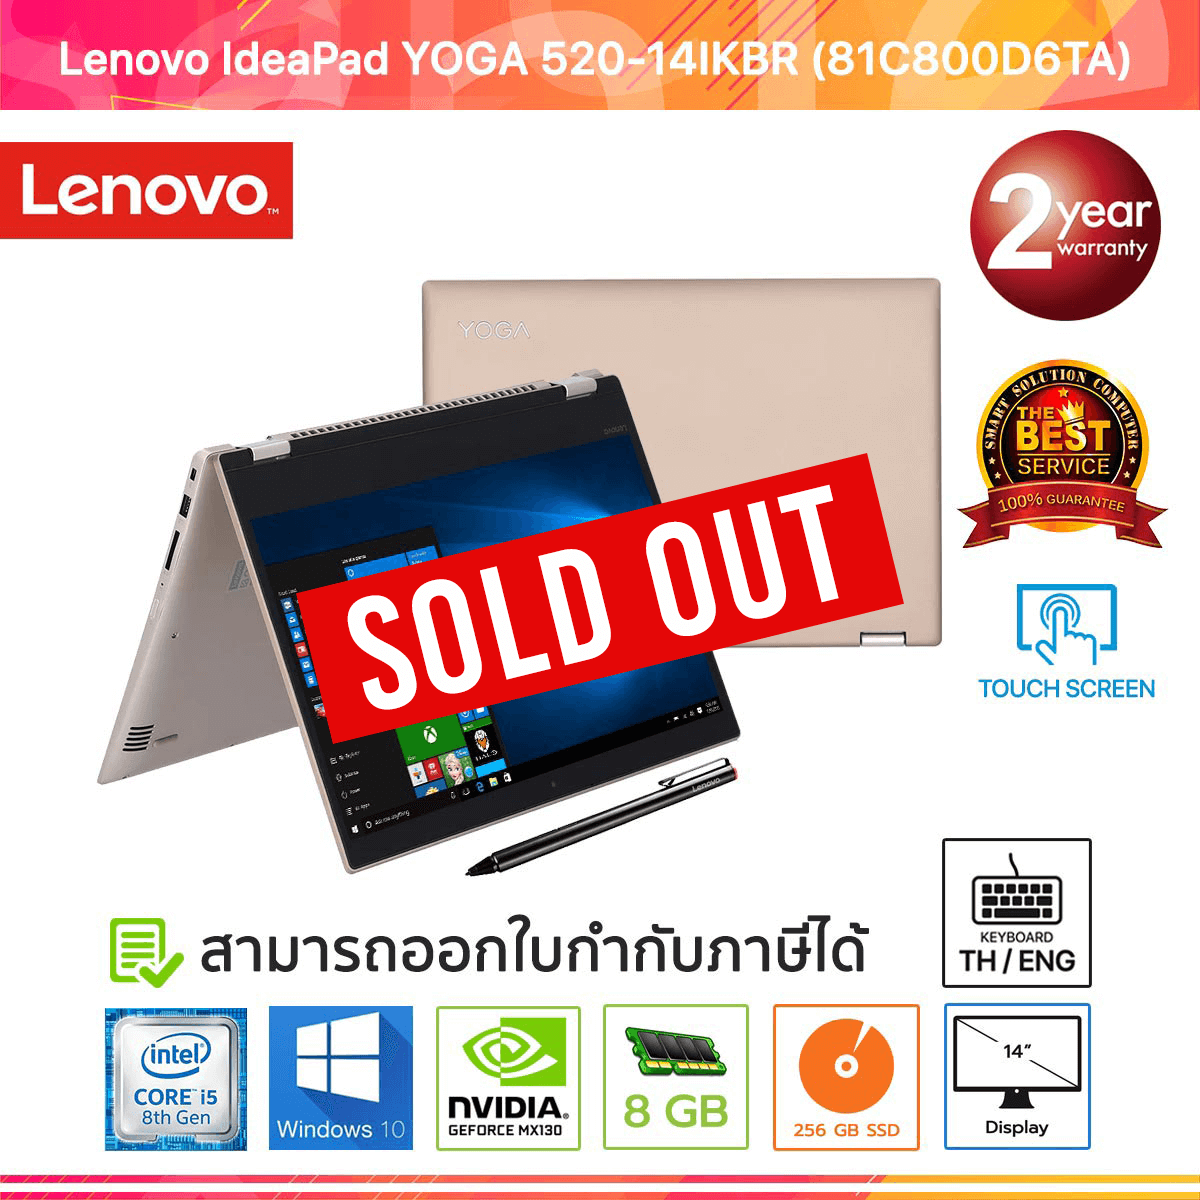 Lenovo IdeaPad YOGA 520-14IKBR (81C800D6TA) i5-8250U/8GB/256GB SSD/MX130 2GB/14.0/Win10 (Gold Metallic)